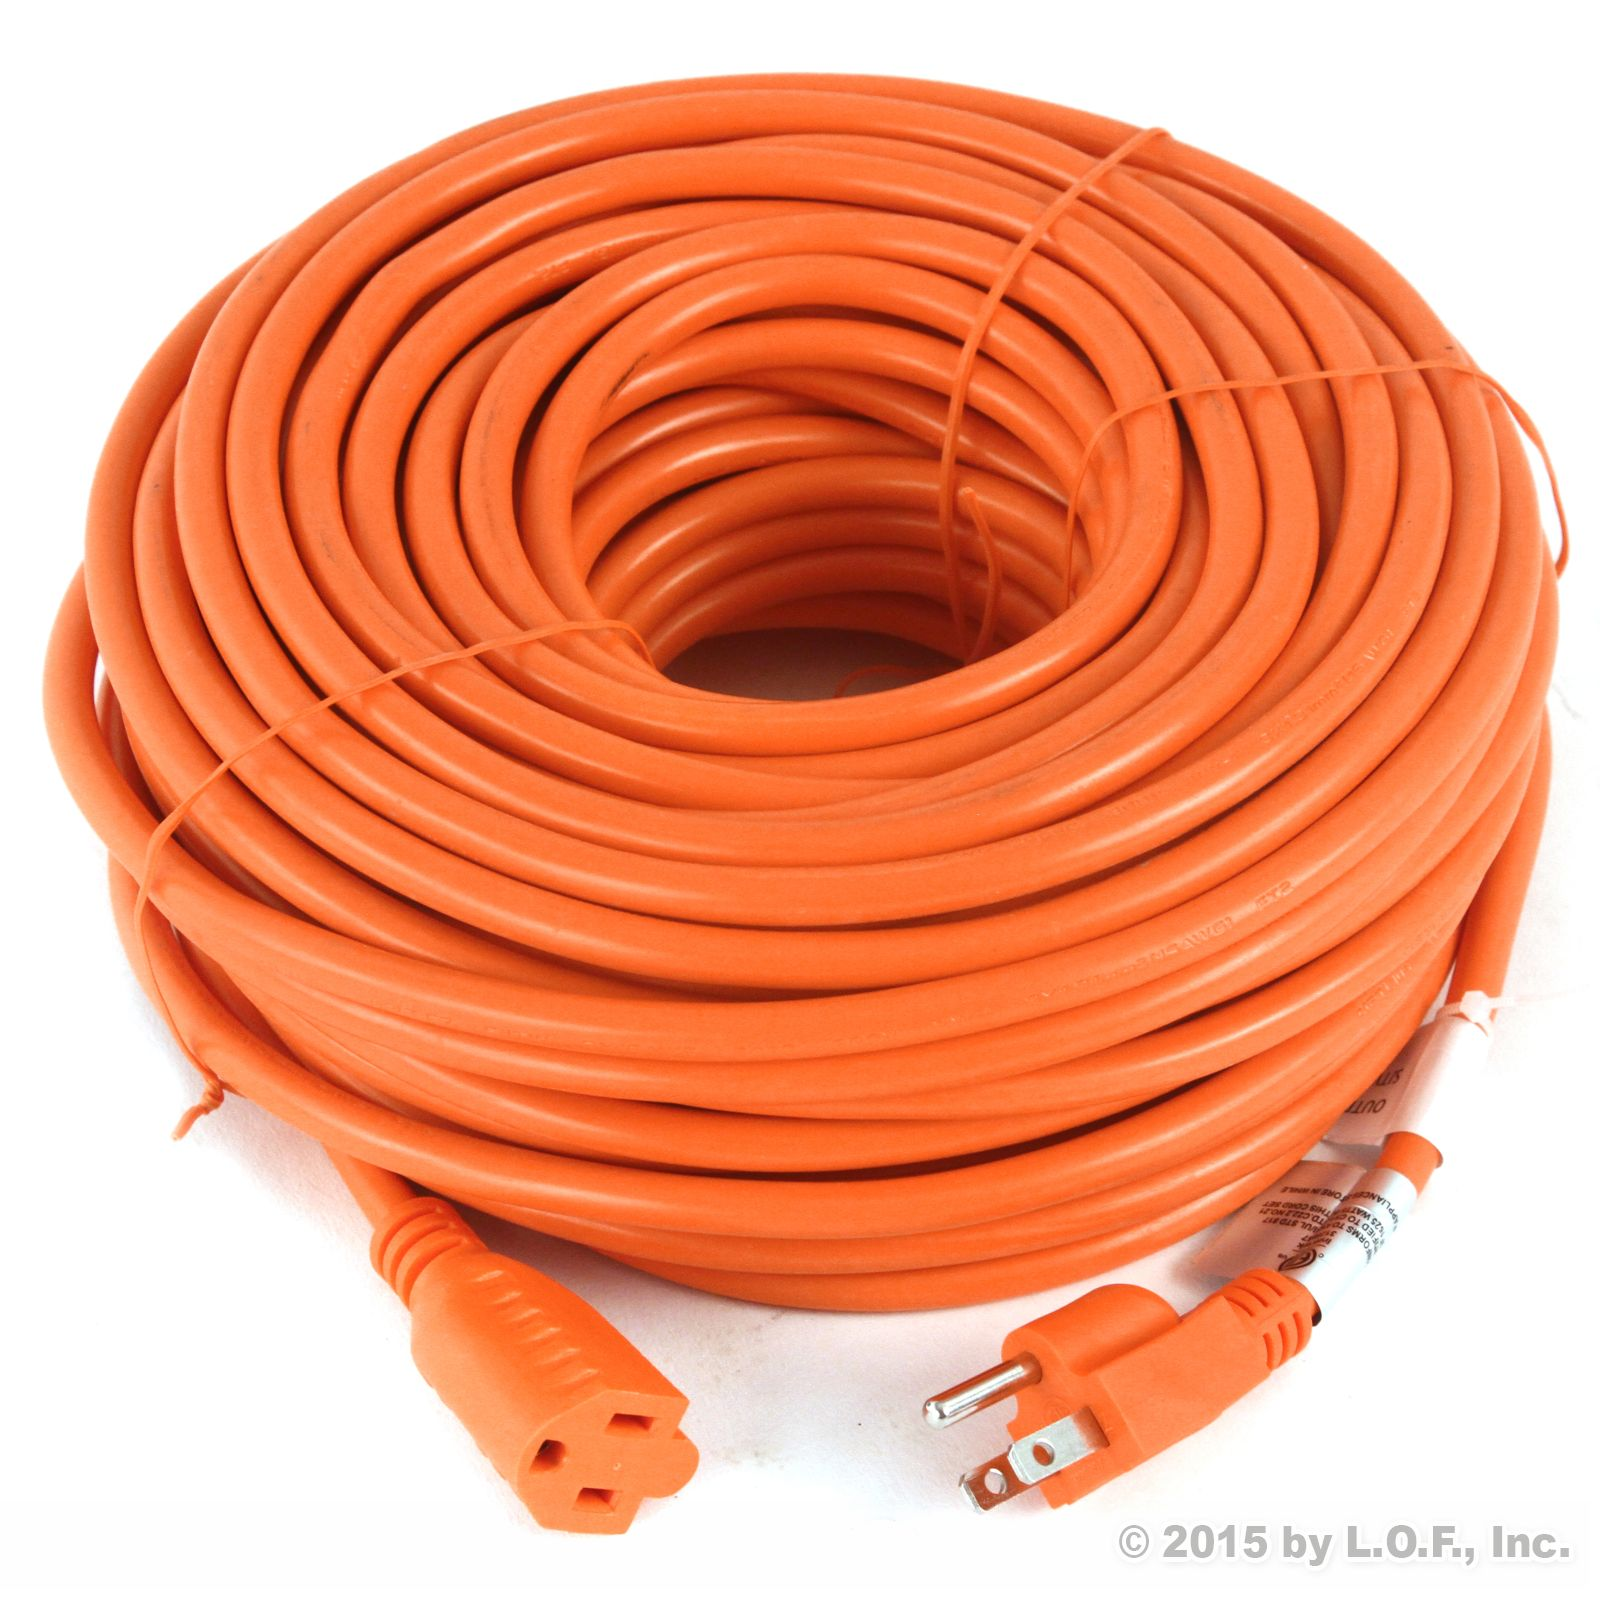 10 Premium Outdoor Extension Cord 125 Volt Cable 100ft 16